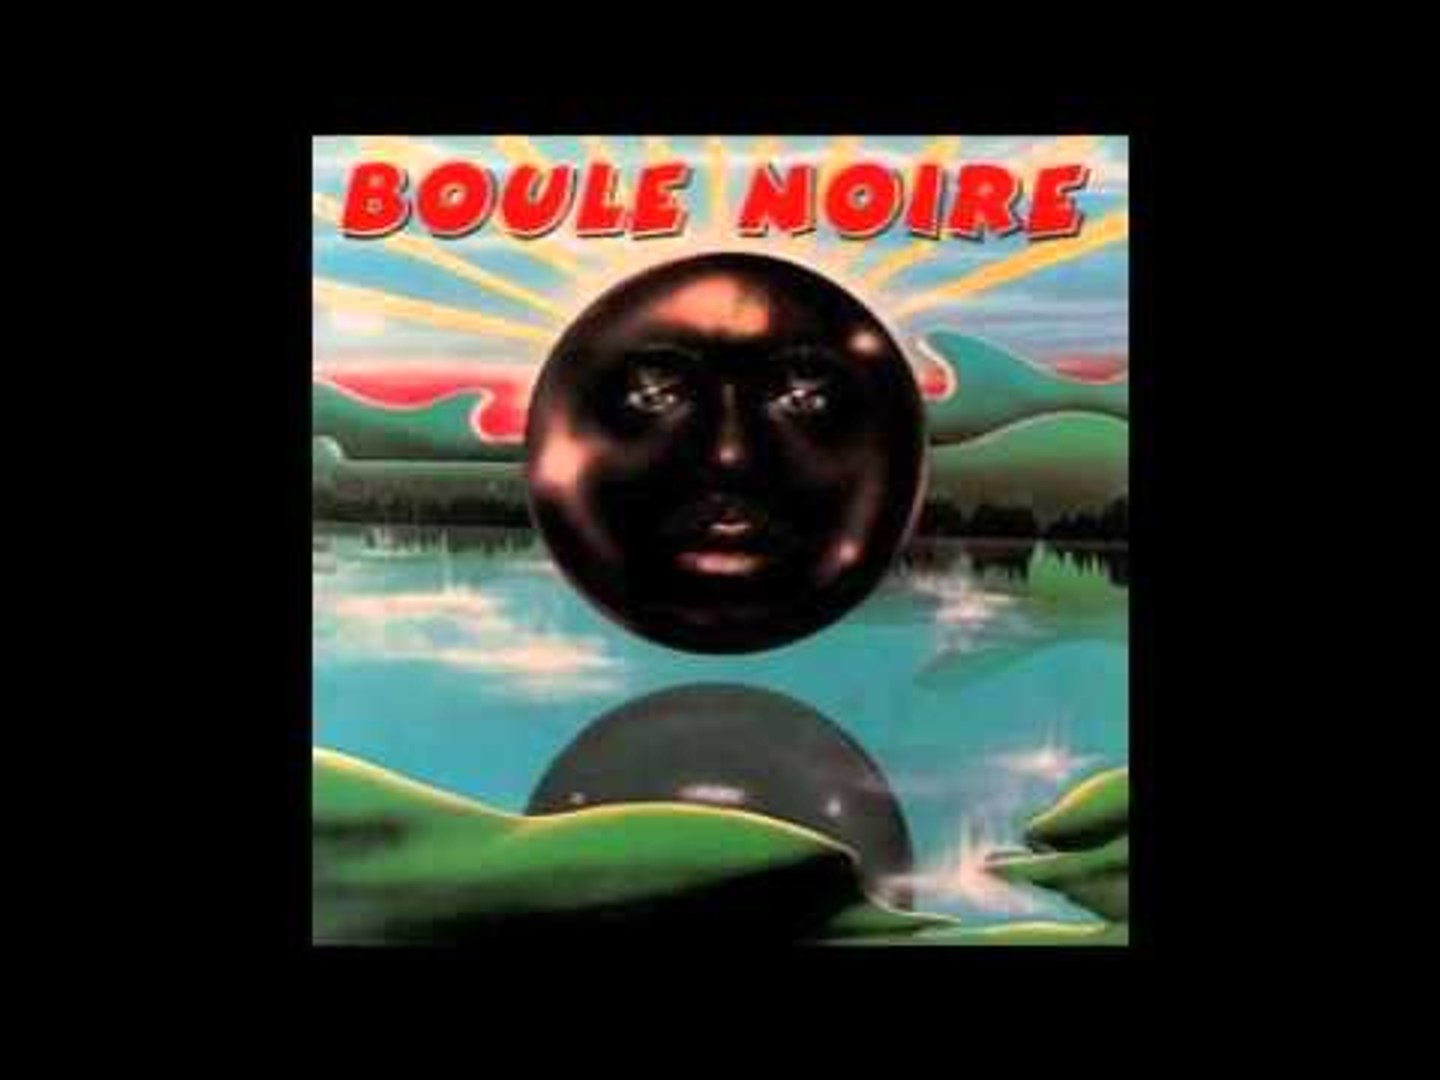 Boule Noire - KiKi D'Hollywood